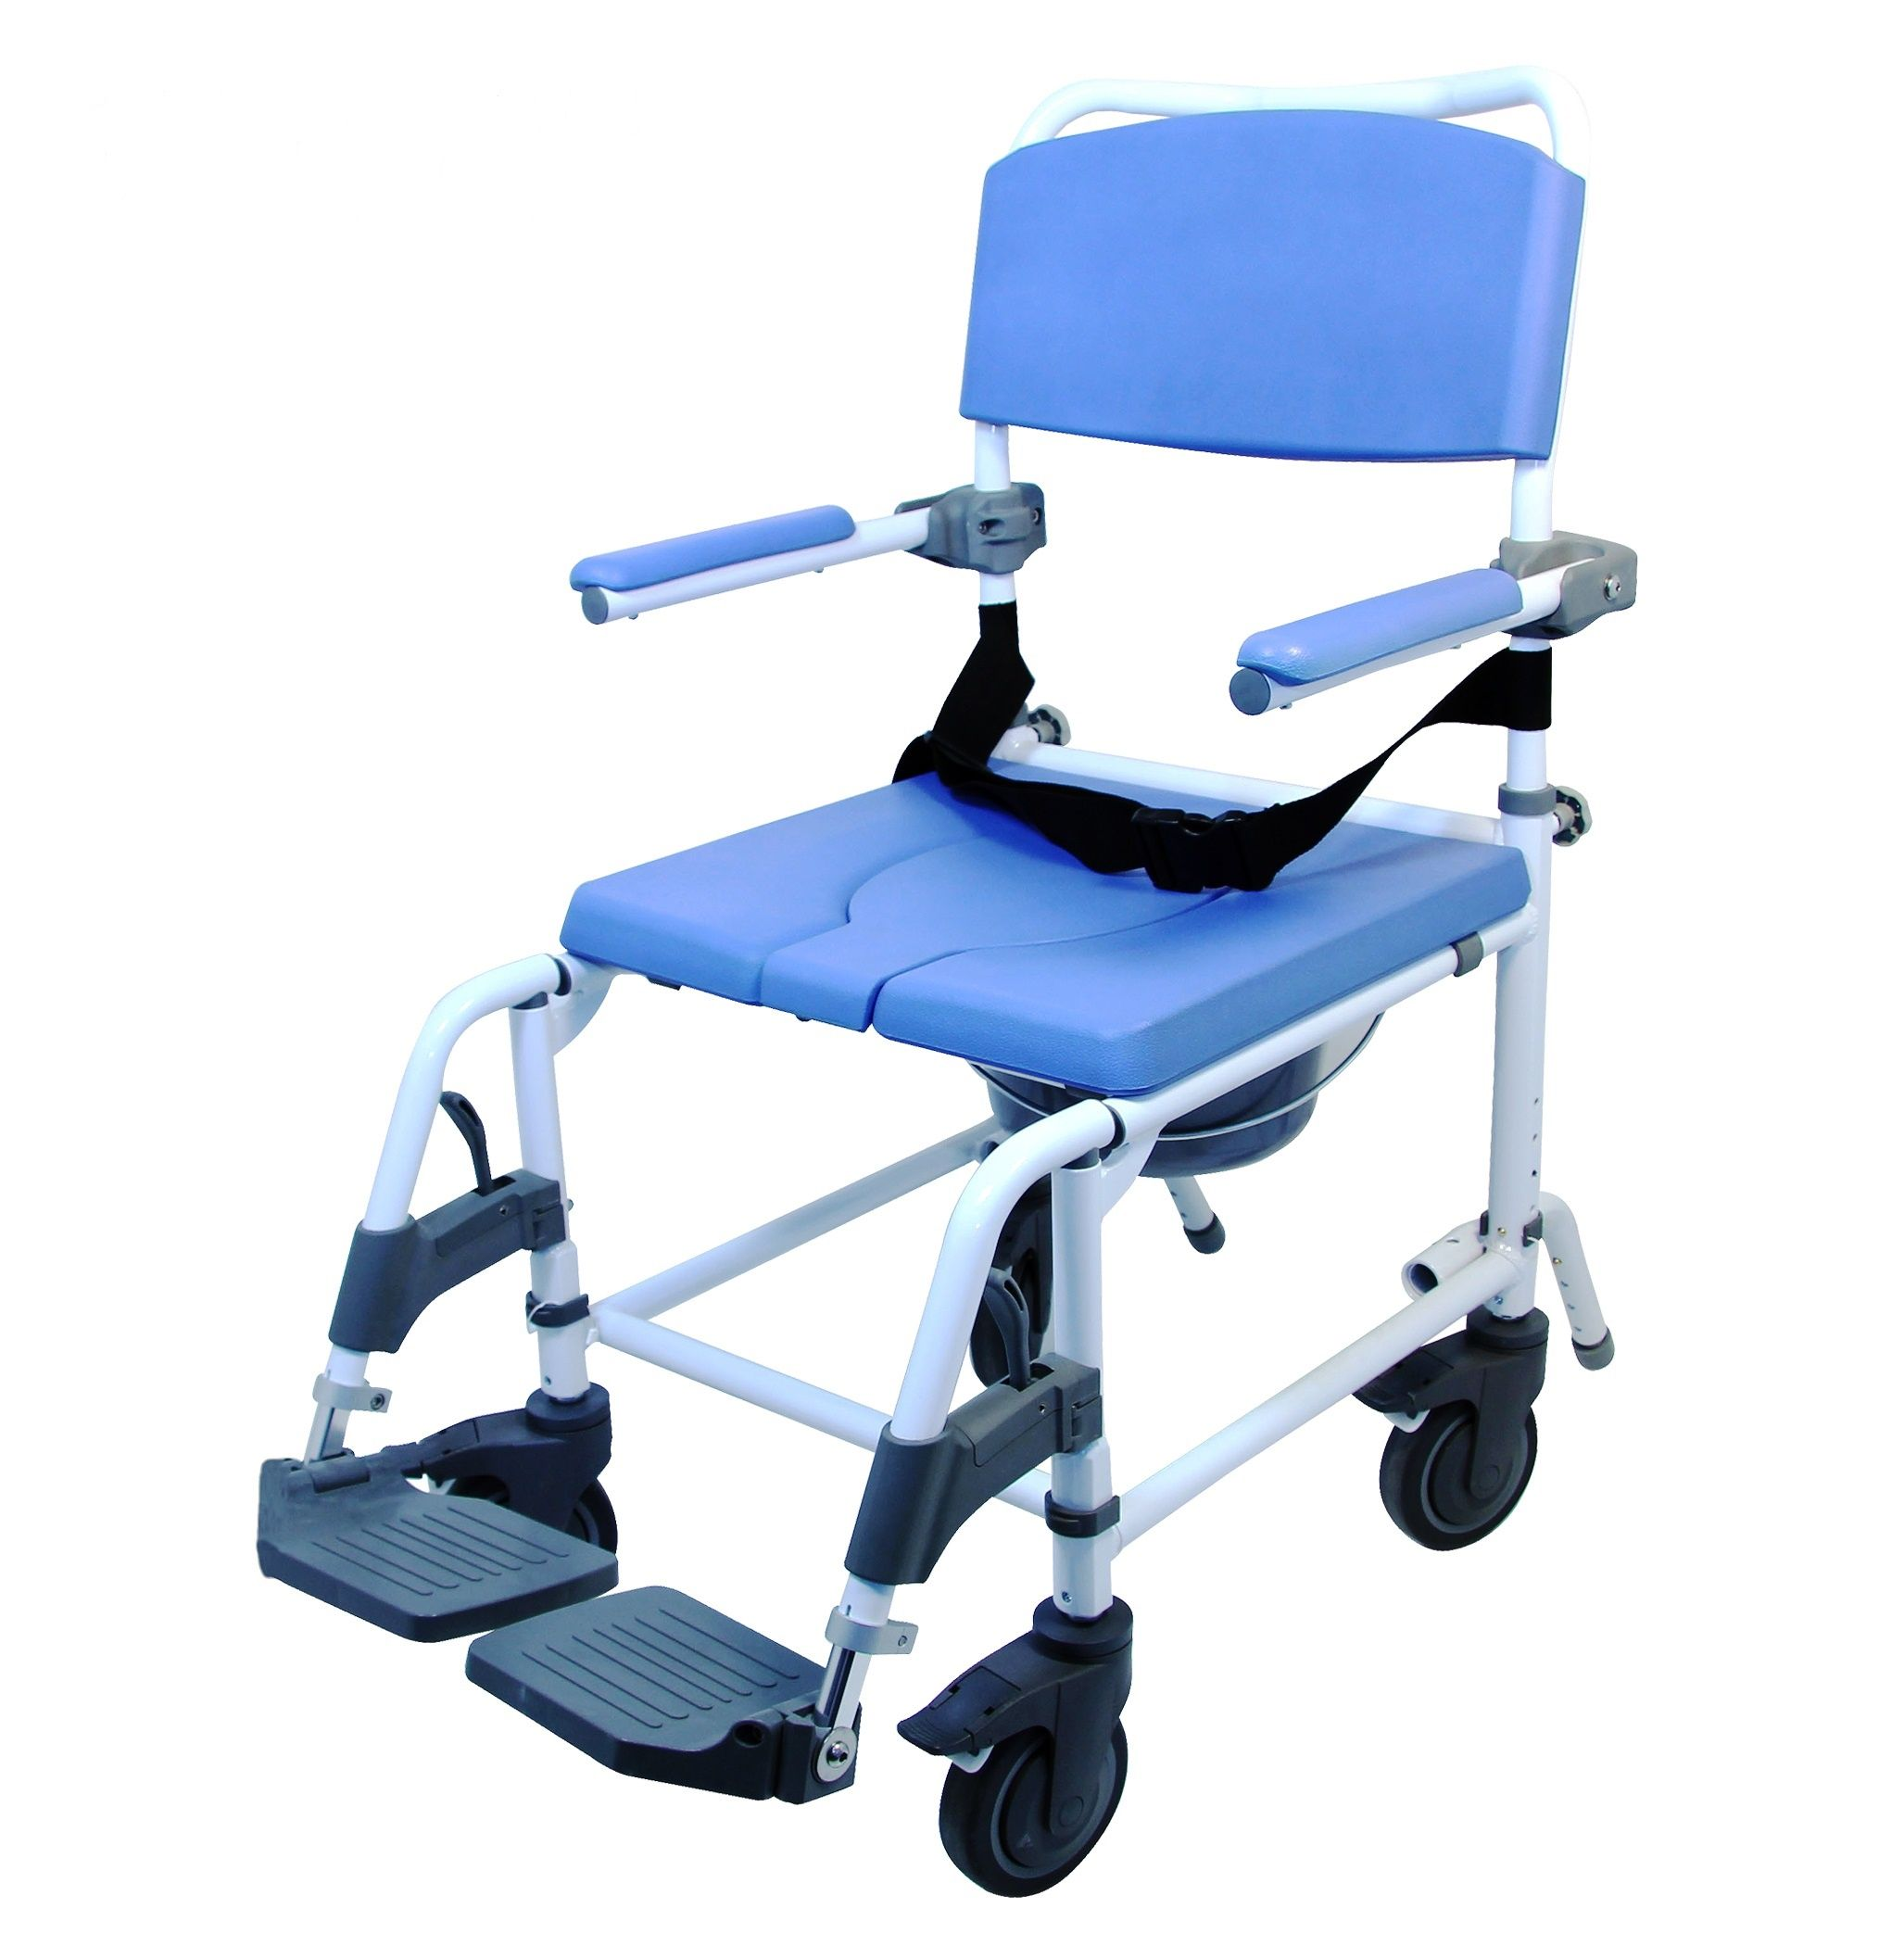 Full Featured No Rust Shower And Toileting Chair Features Removable Footrests 5